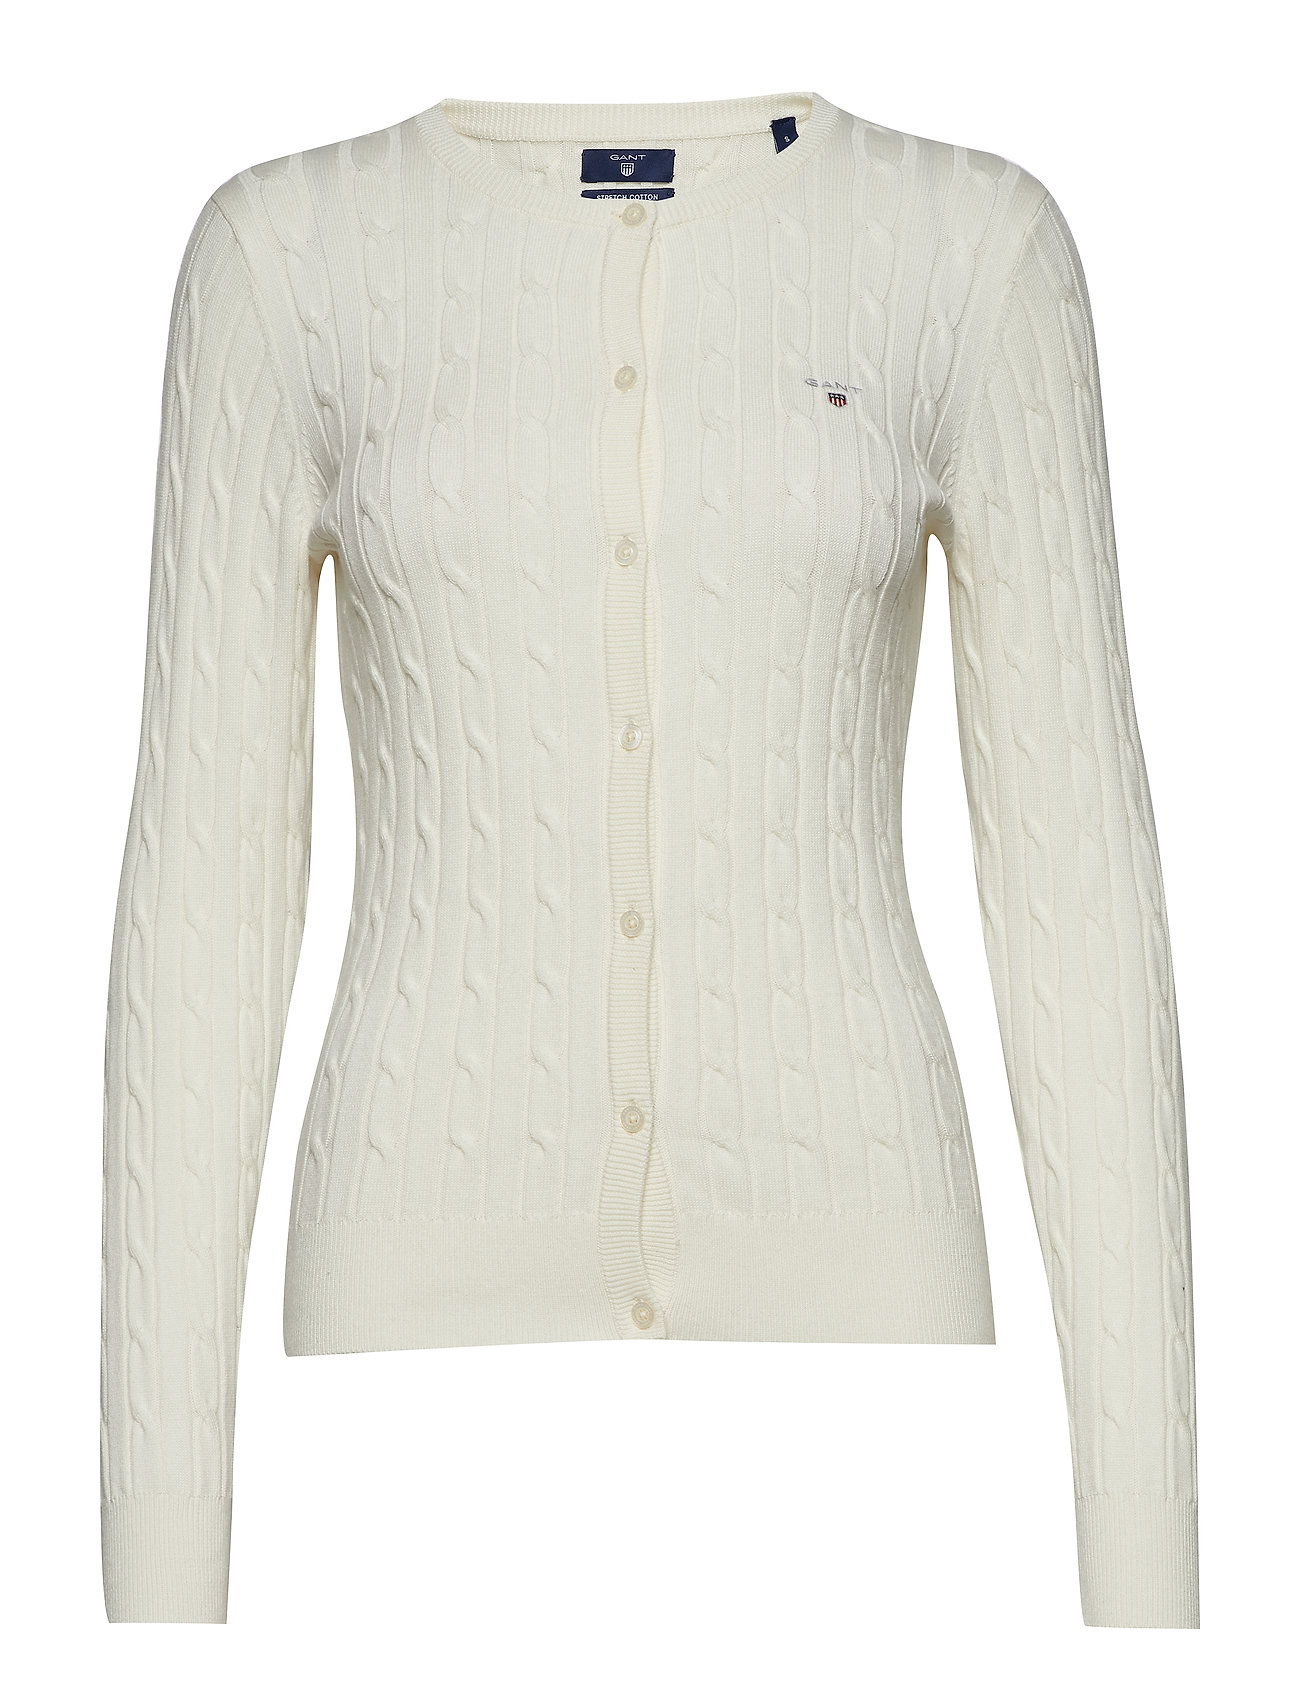 GANT STRETCH COTTON CABLE CREW CARDIGAN - EGGSHELL